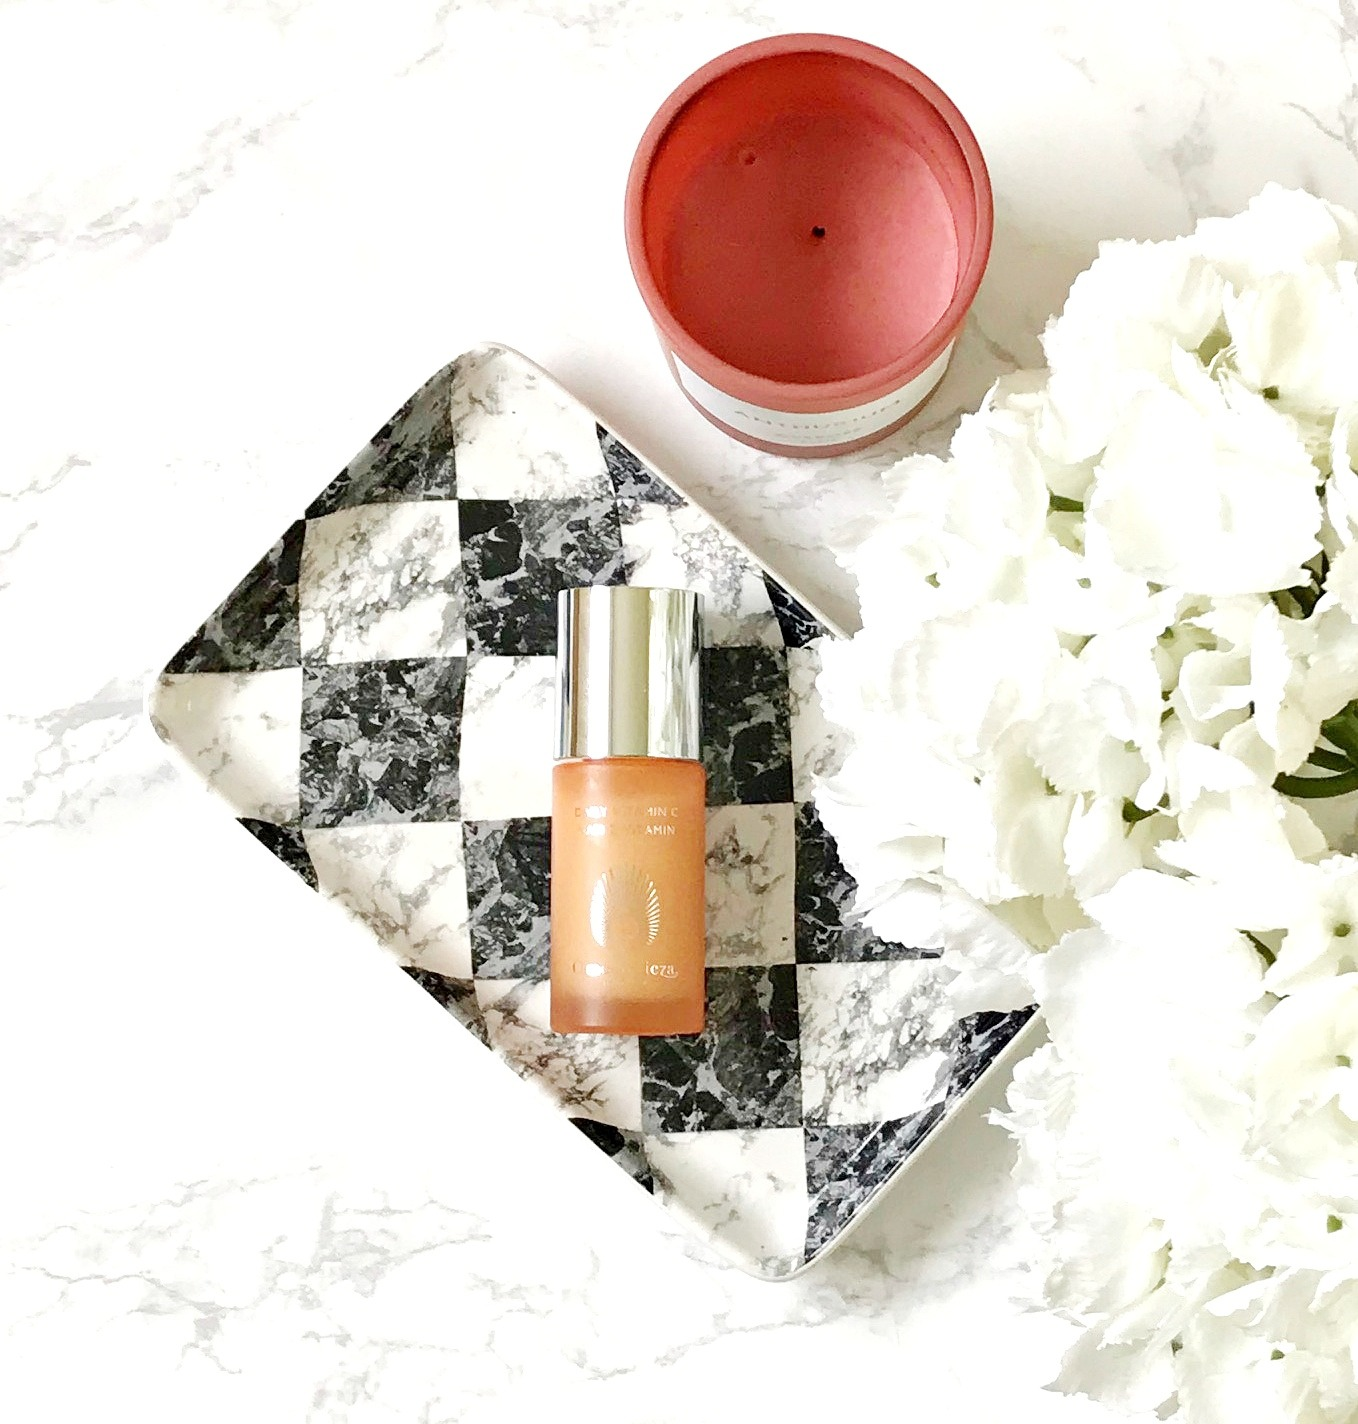 Omorovicza Daily Vitamin C Serum Review